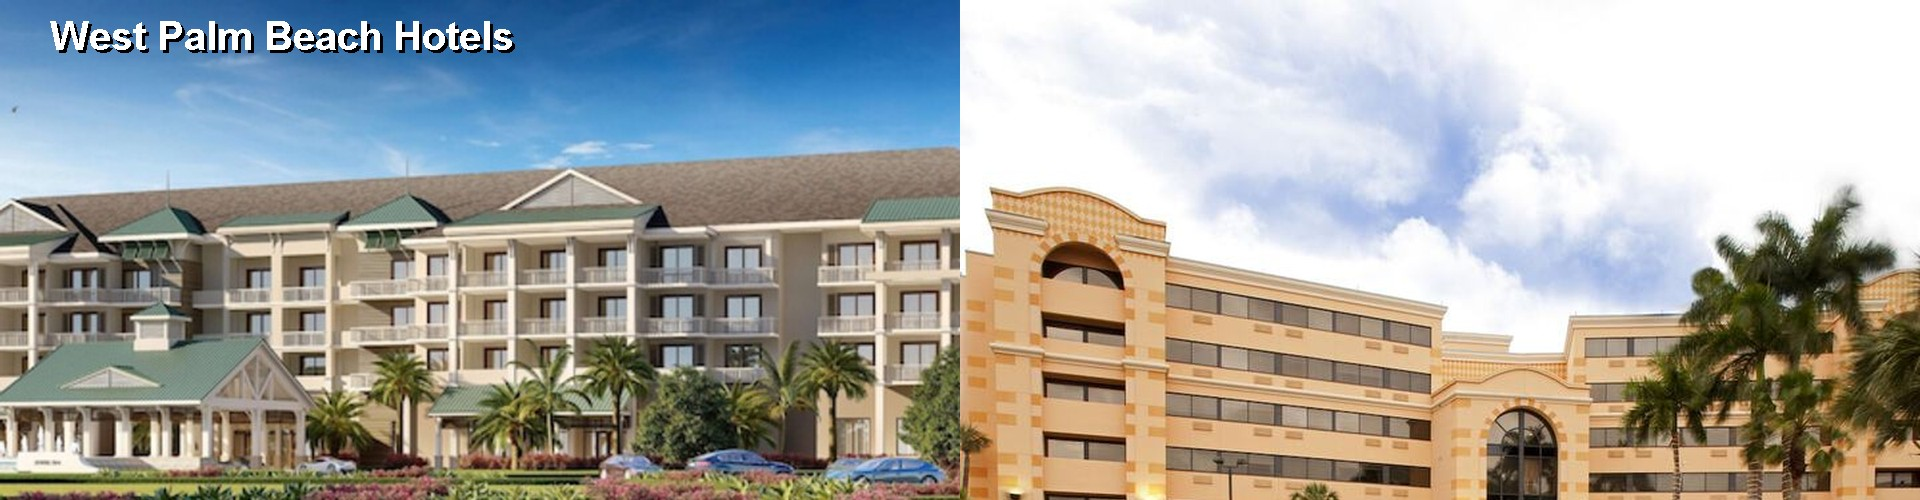 5 Best Hotels near West Palm Beach